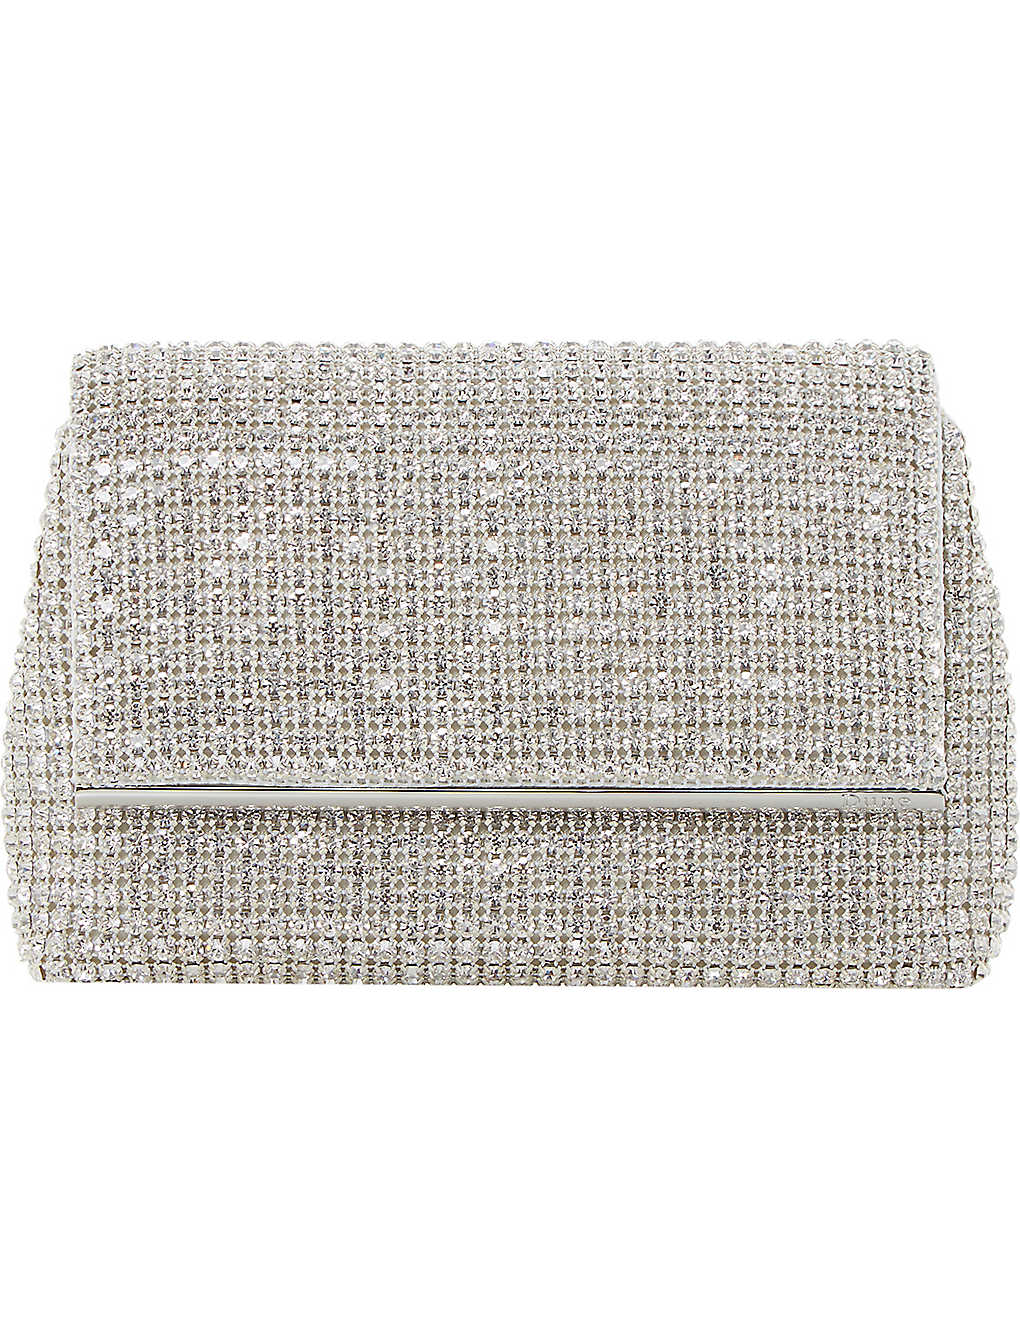 4828cb59e6f7 DUNE - Everlina dimante clutch bag